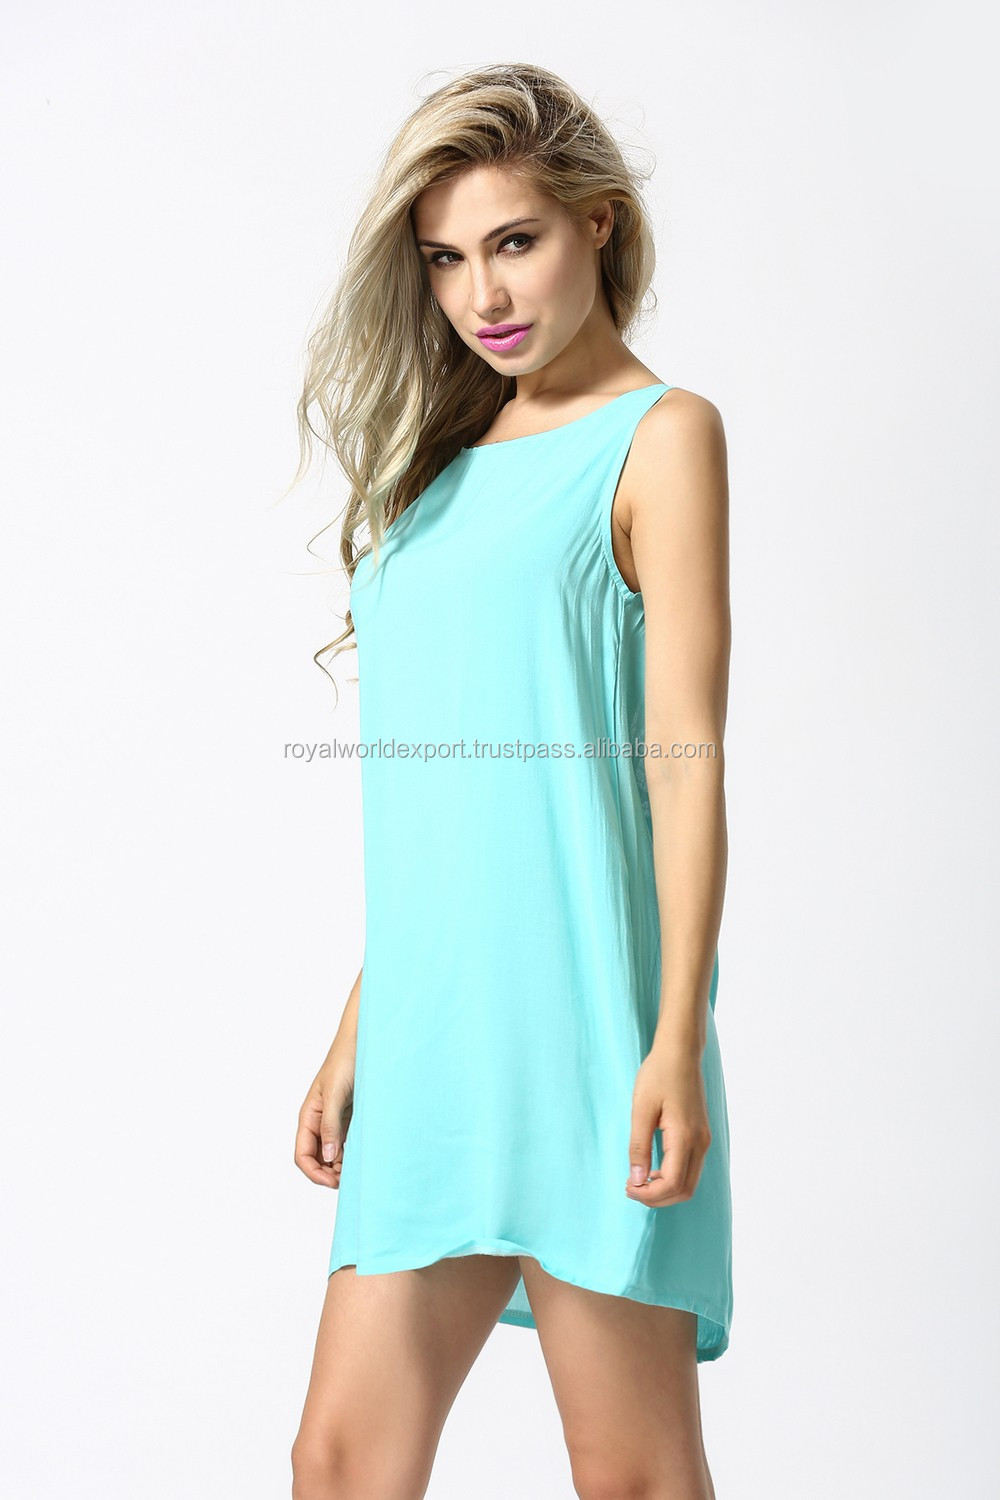 c199bb52 Yarn Dyed Cotton Western Clothing Style For Casual Wear Tunic Dress ...